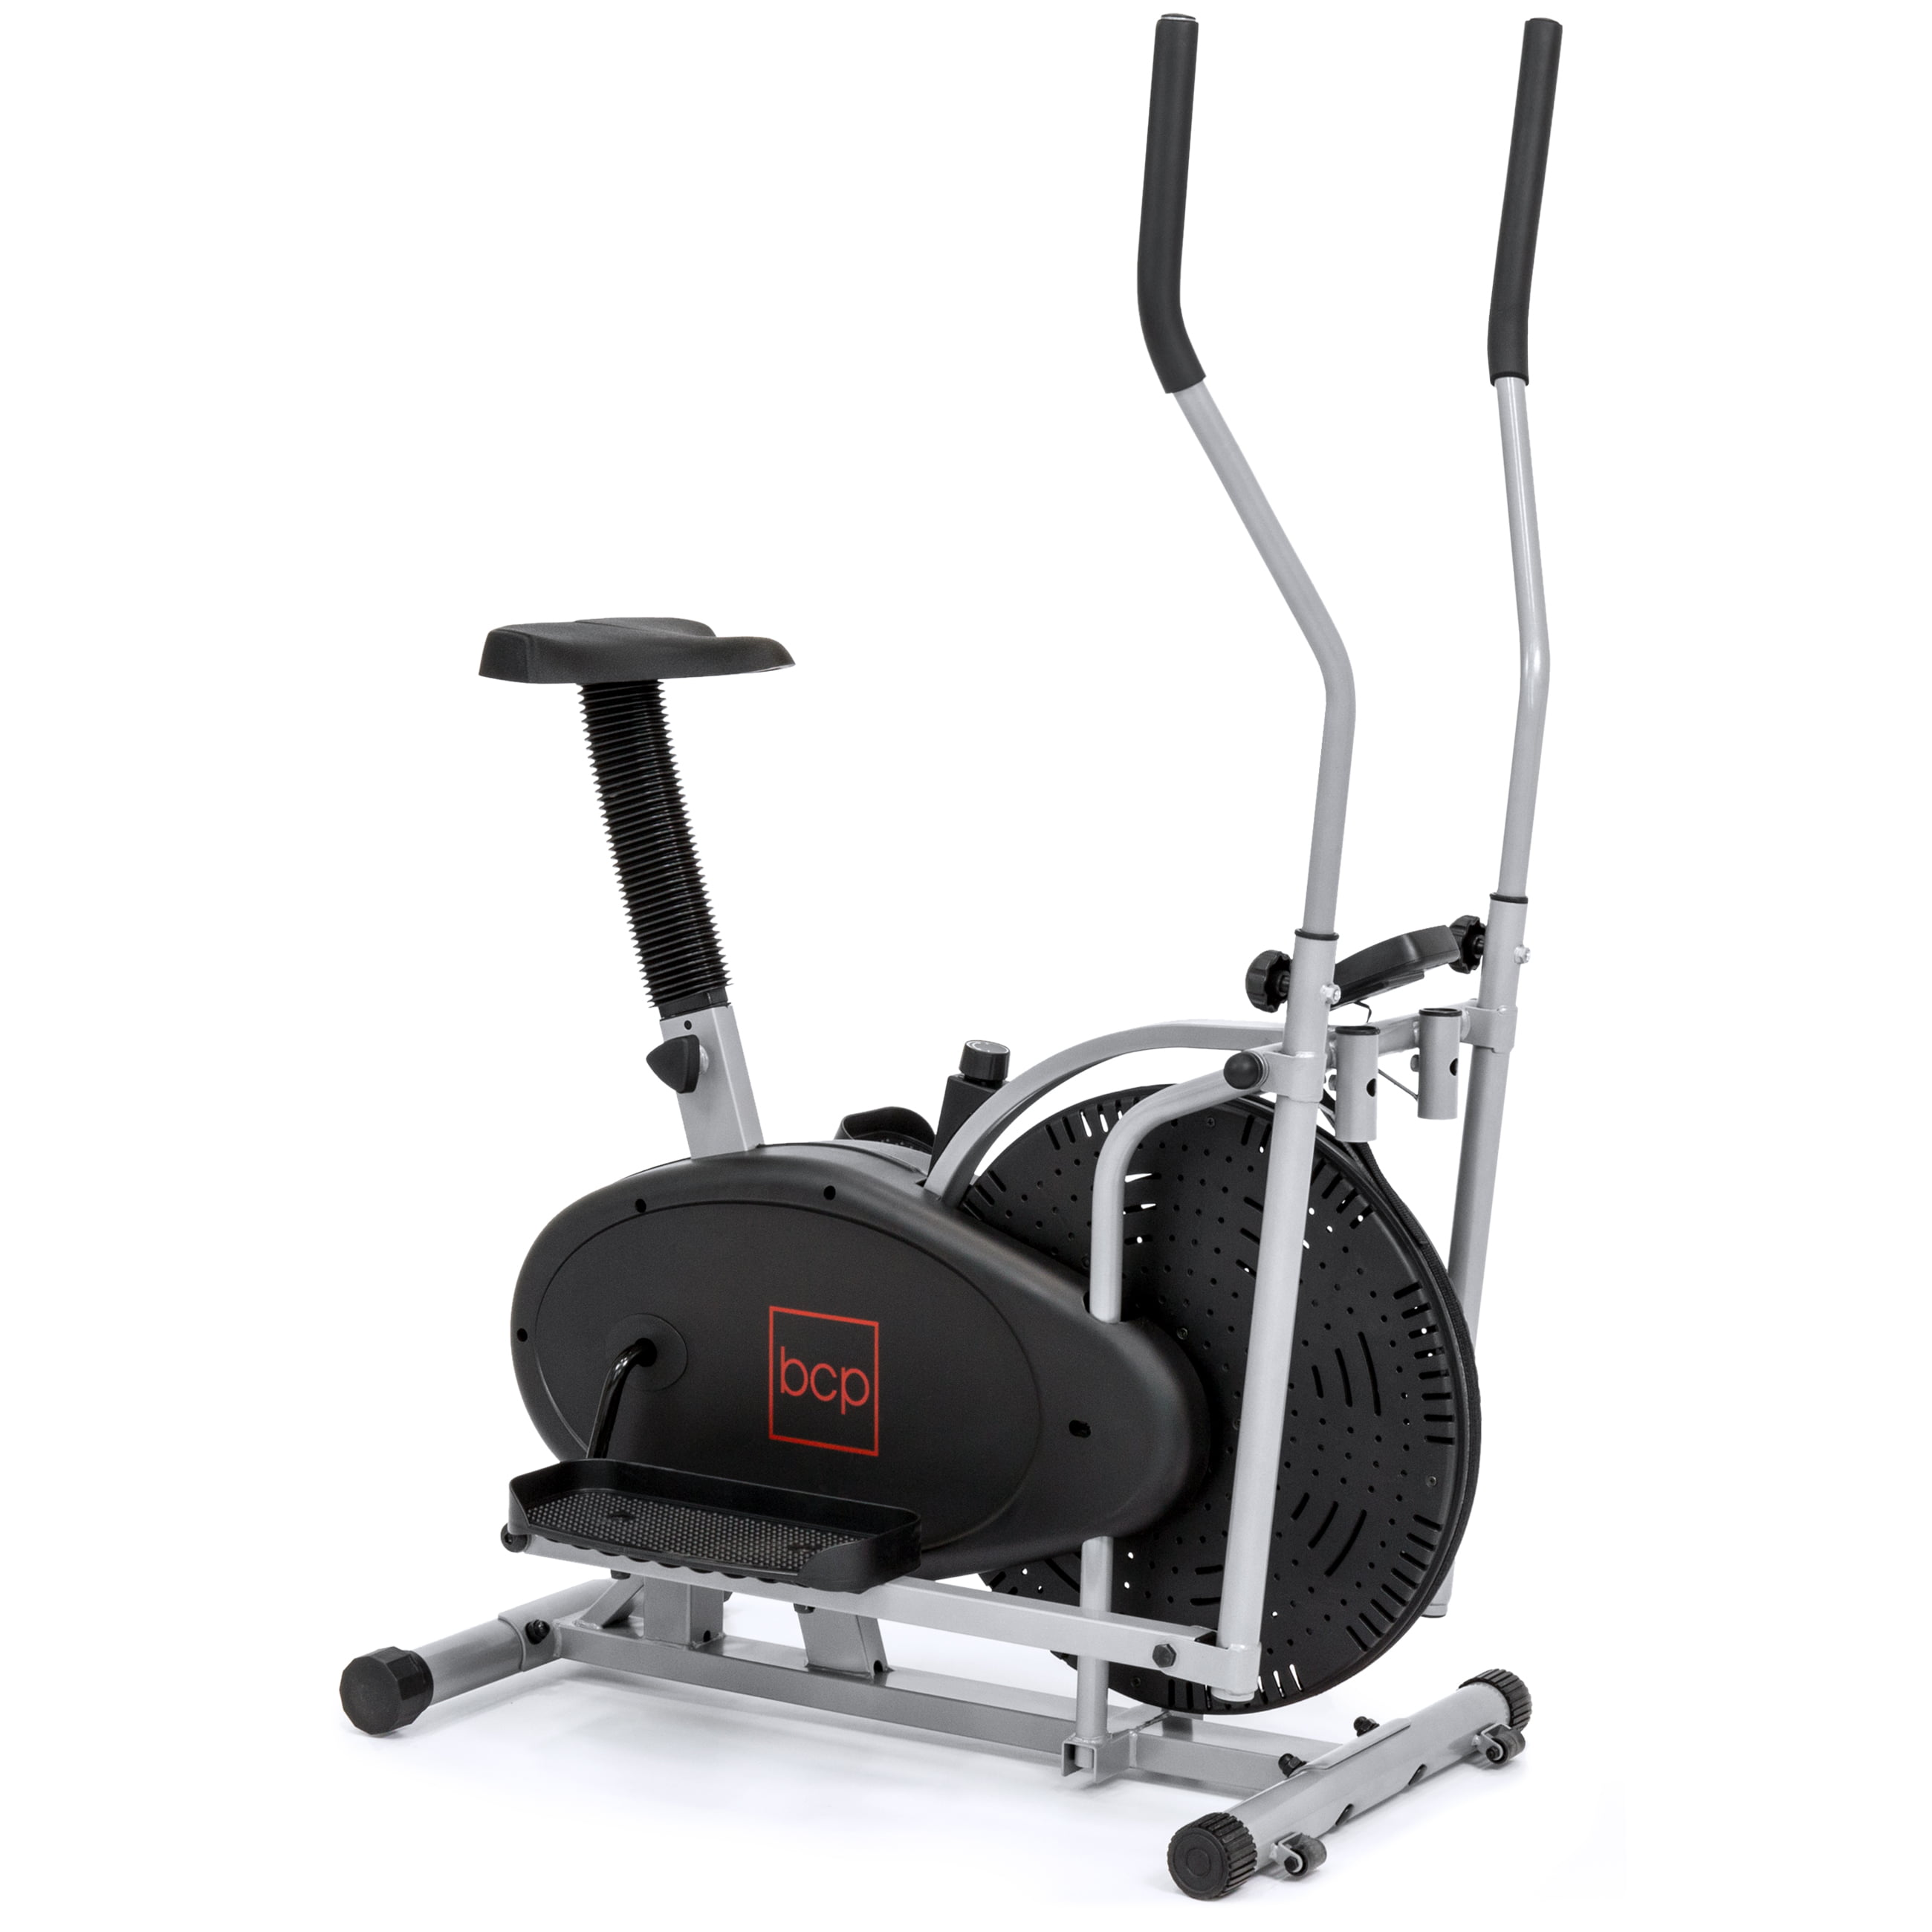 Best Choice Products 2-in-1 Elliptical Trainer And